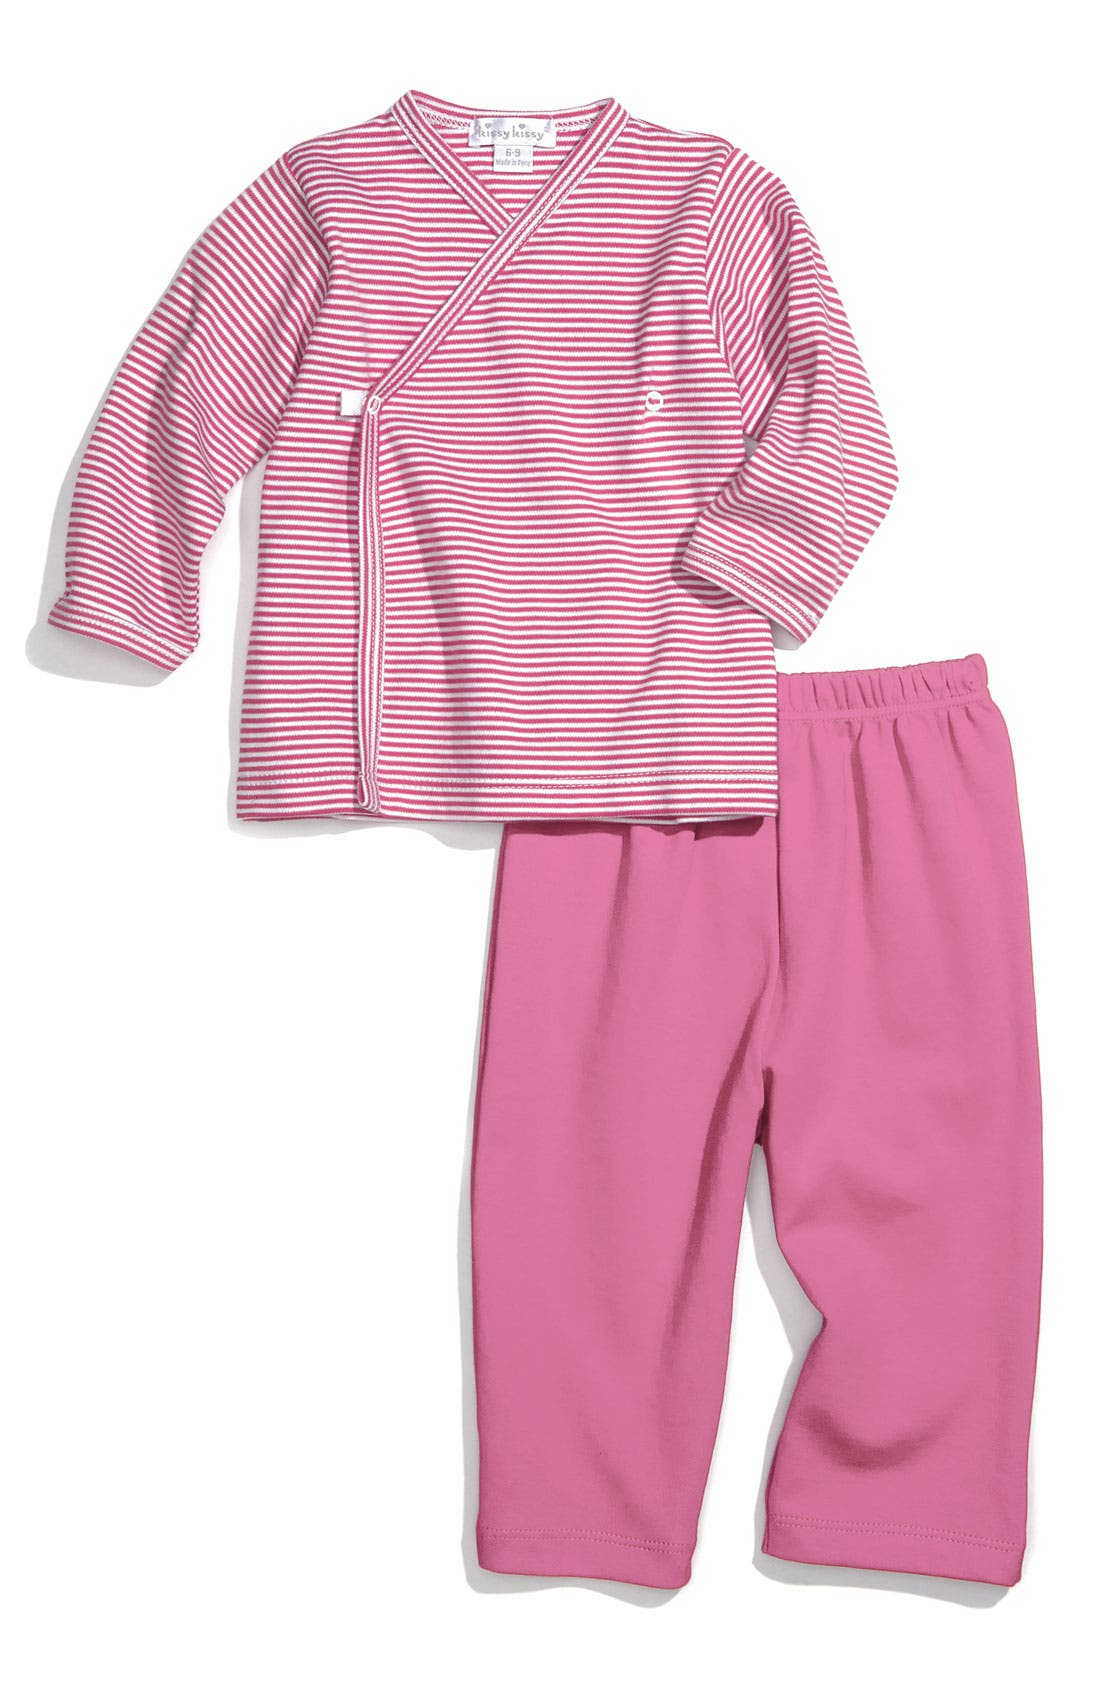 Alternate Image 1 Selected - Kissy Kissy Top & Pants Set (Baby)